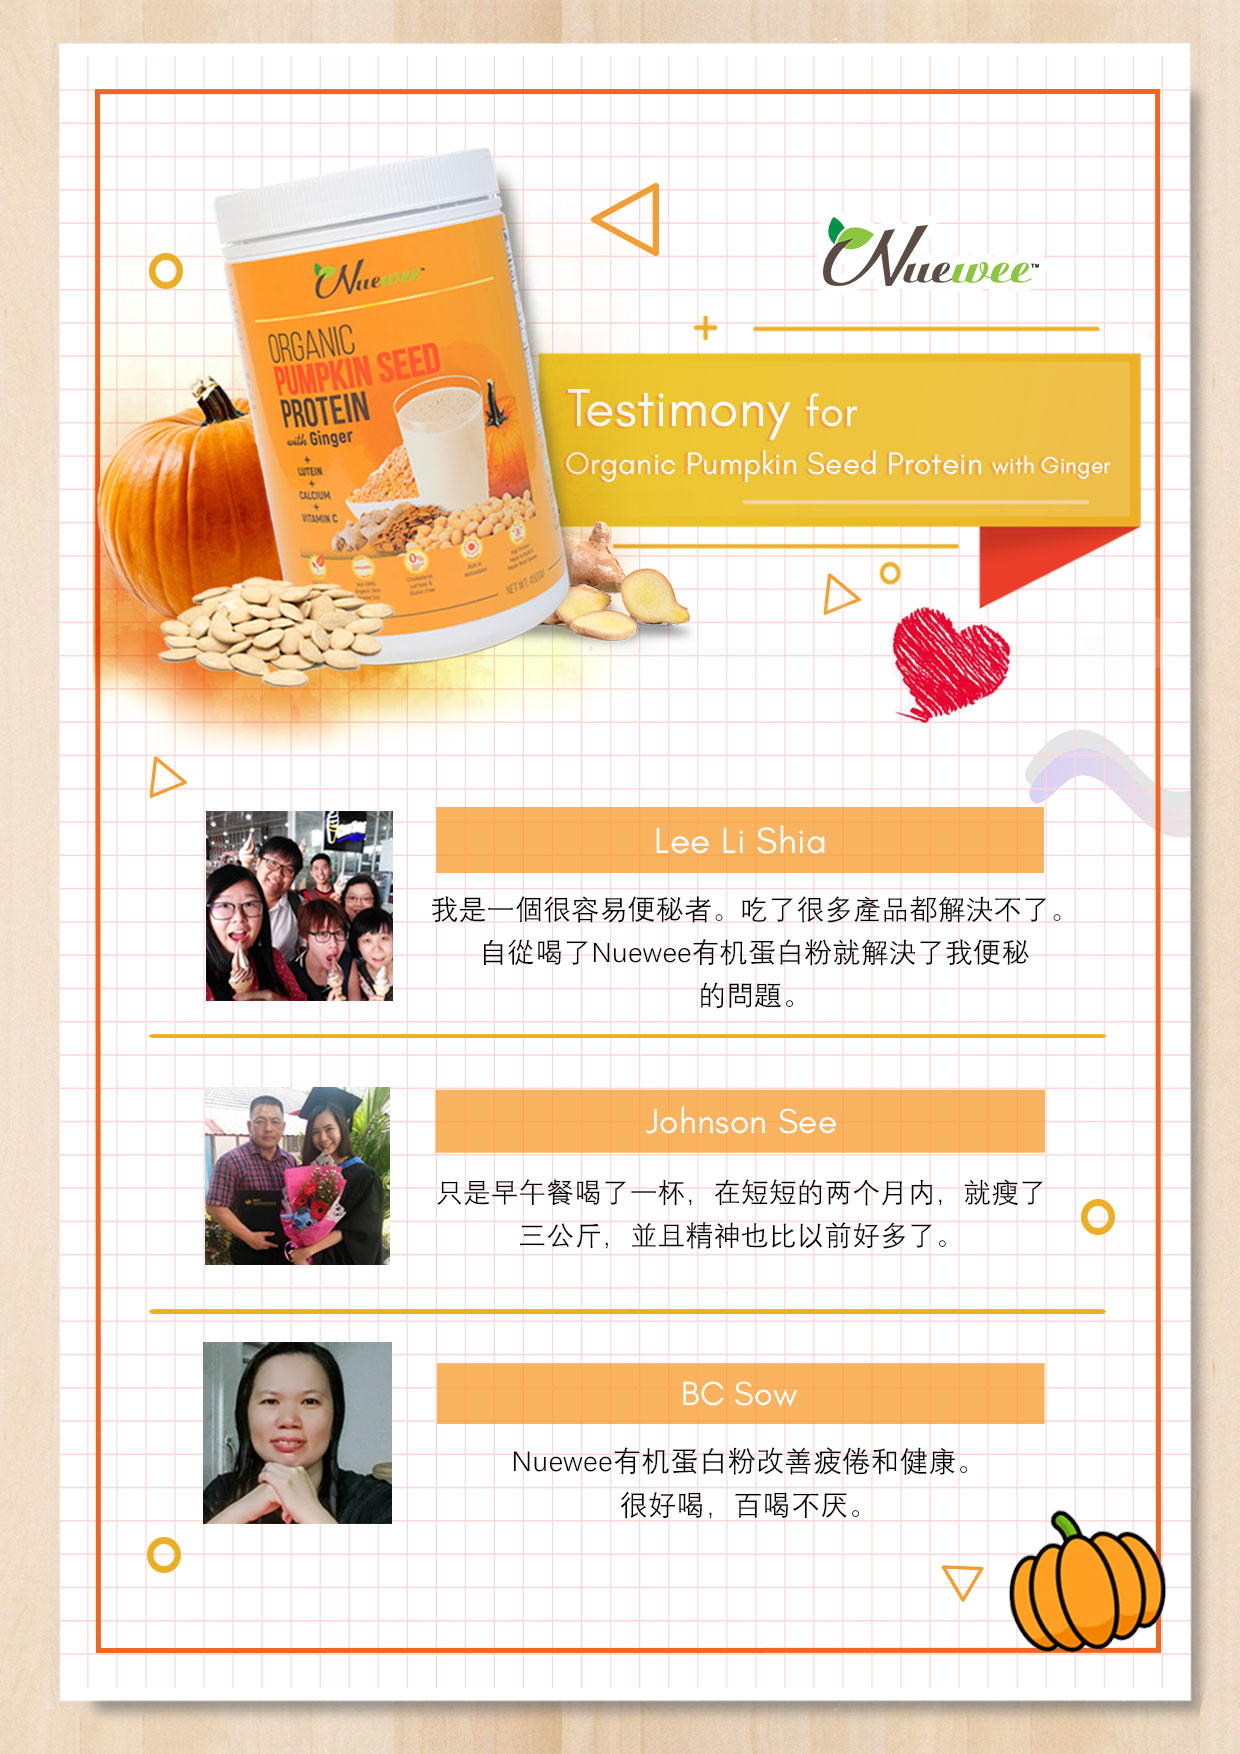 Testimony-of-Nuewee-Organic-Pumpkin-seeds-protein-with-ginger (1).jpg